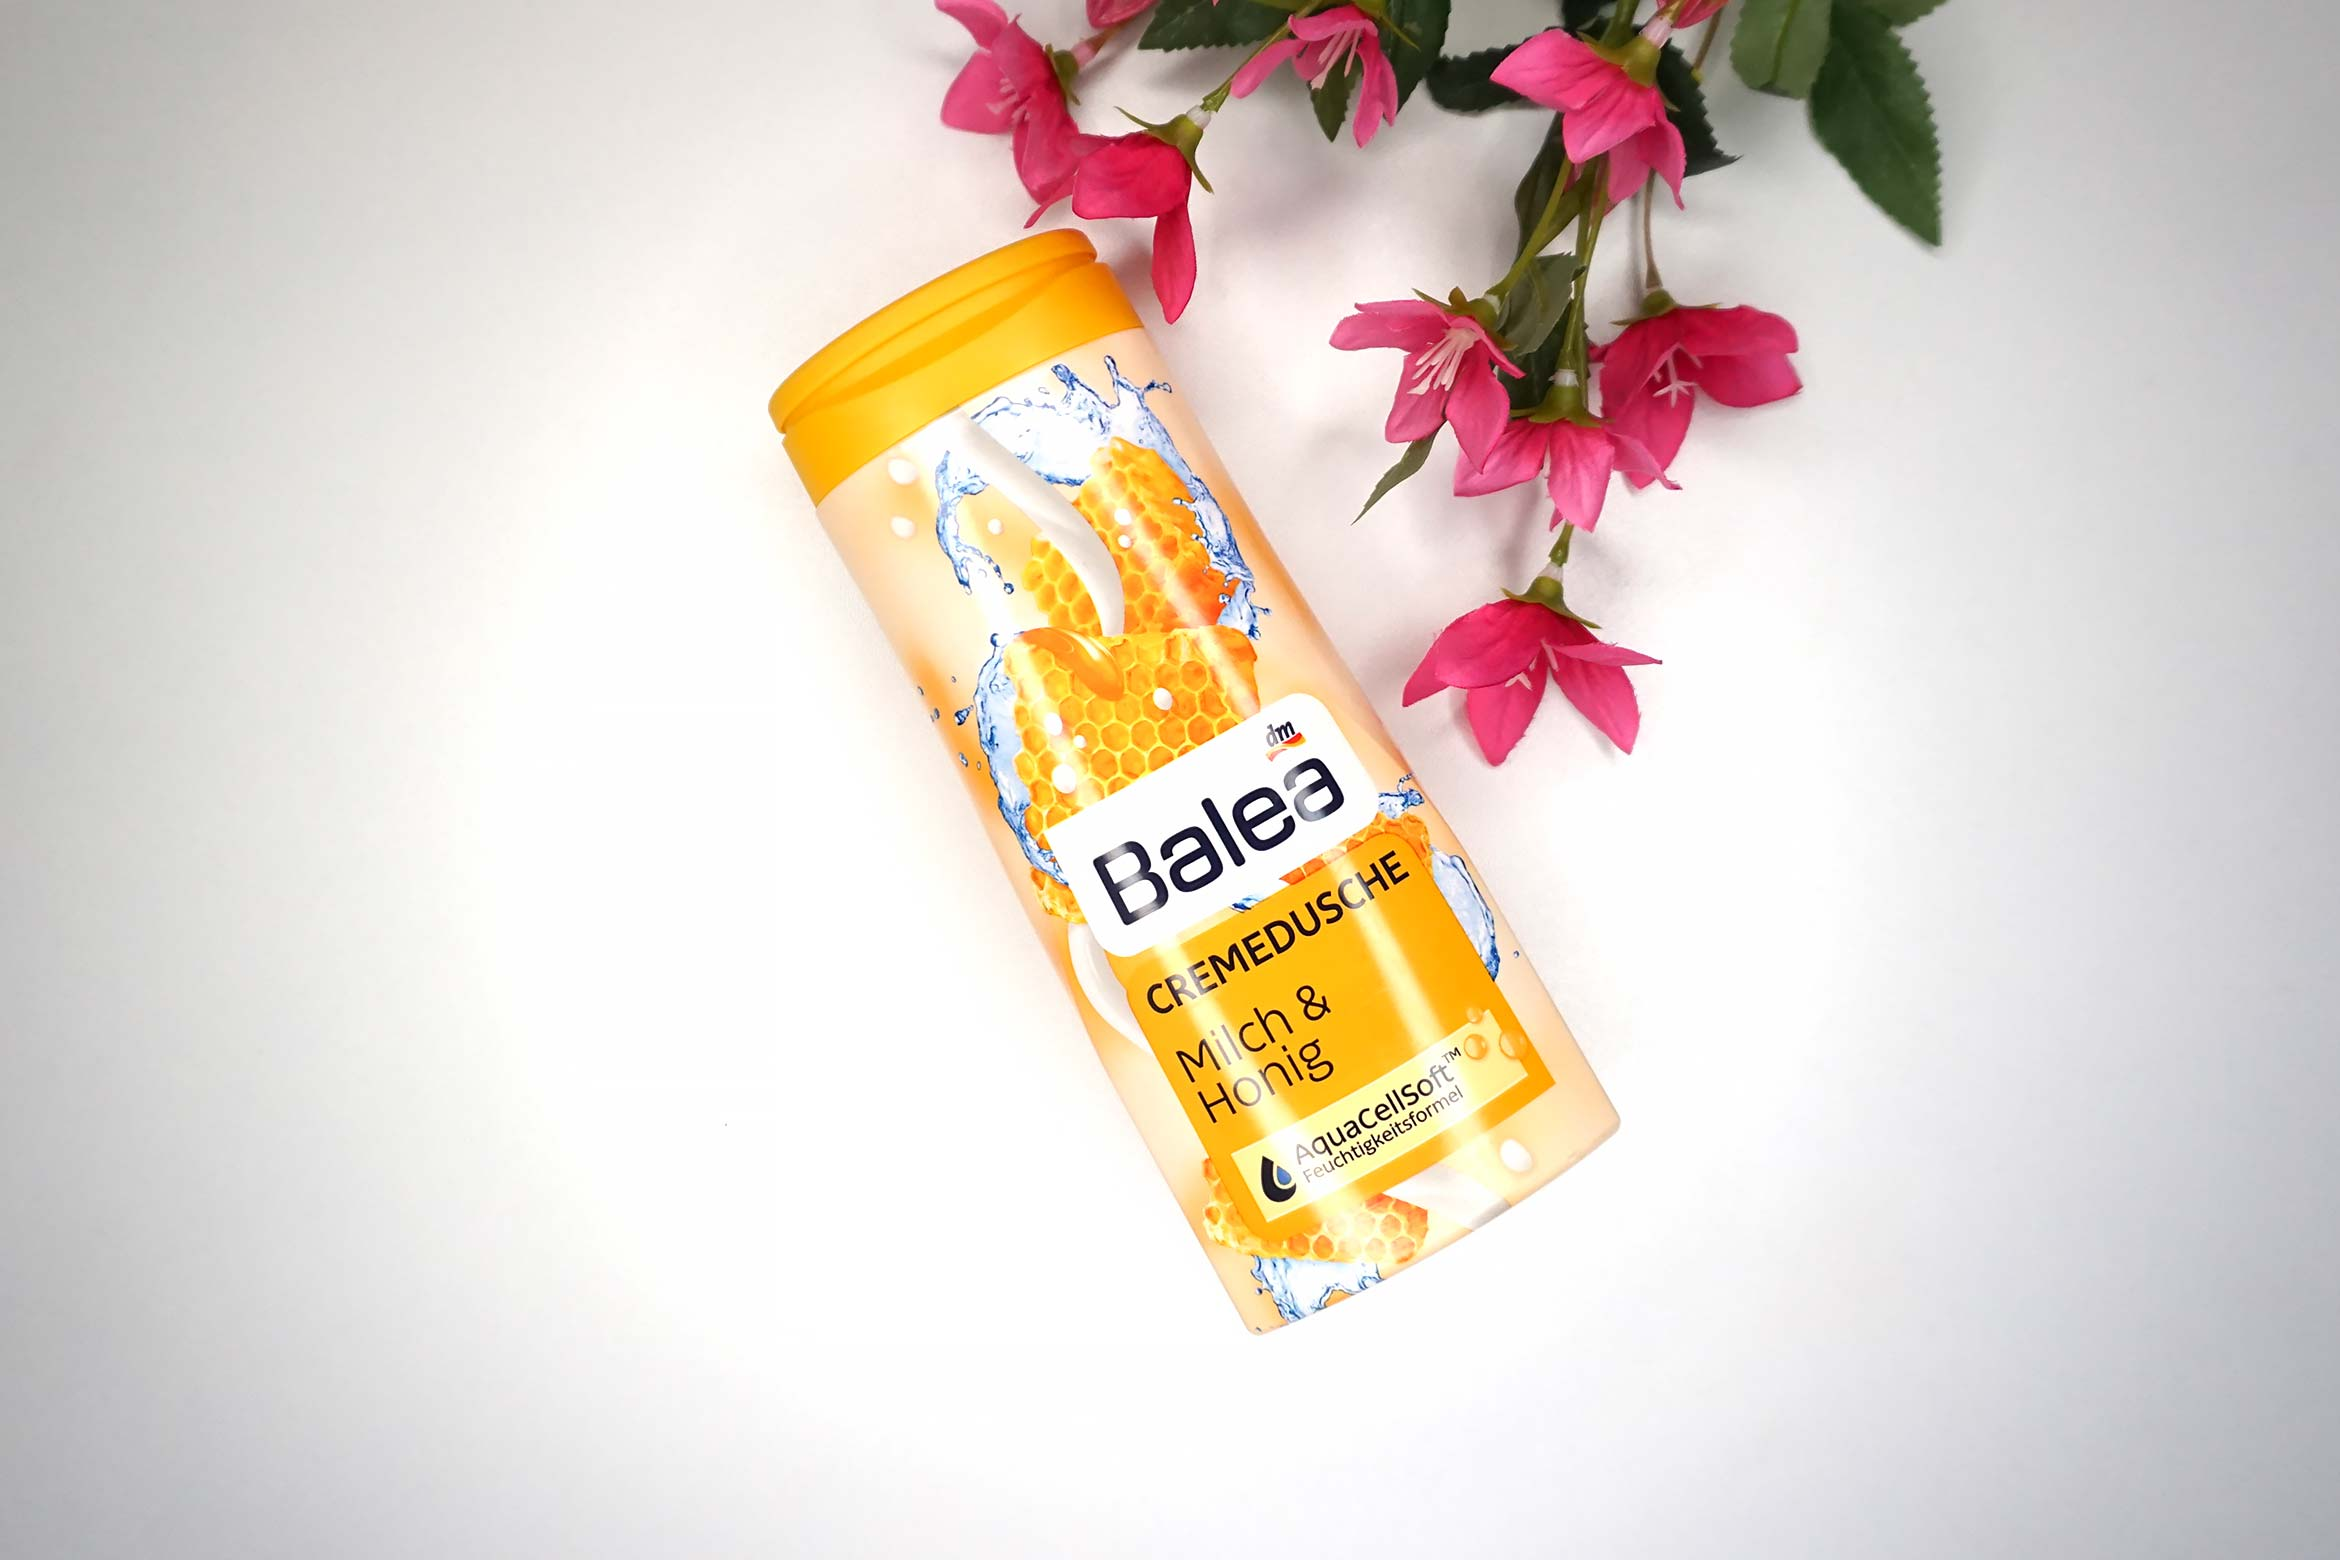 balea-milch-&-honig-review